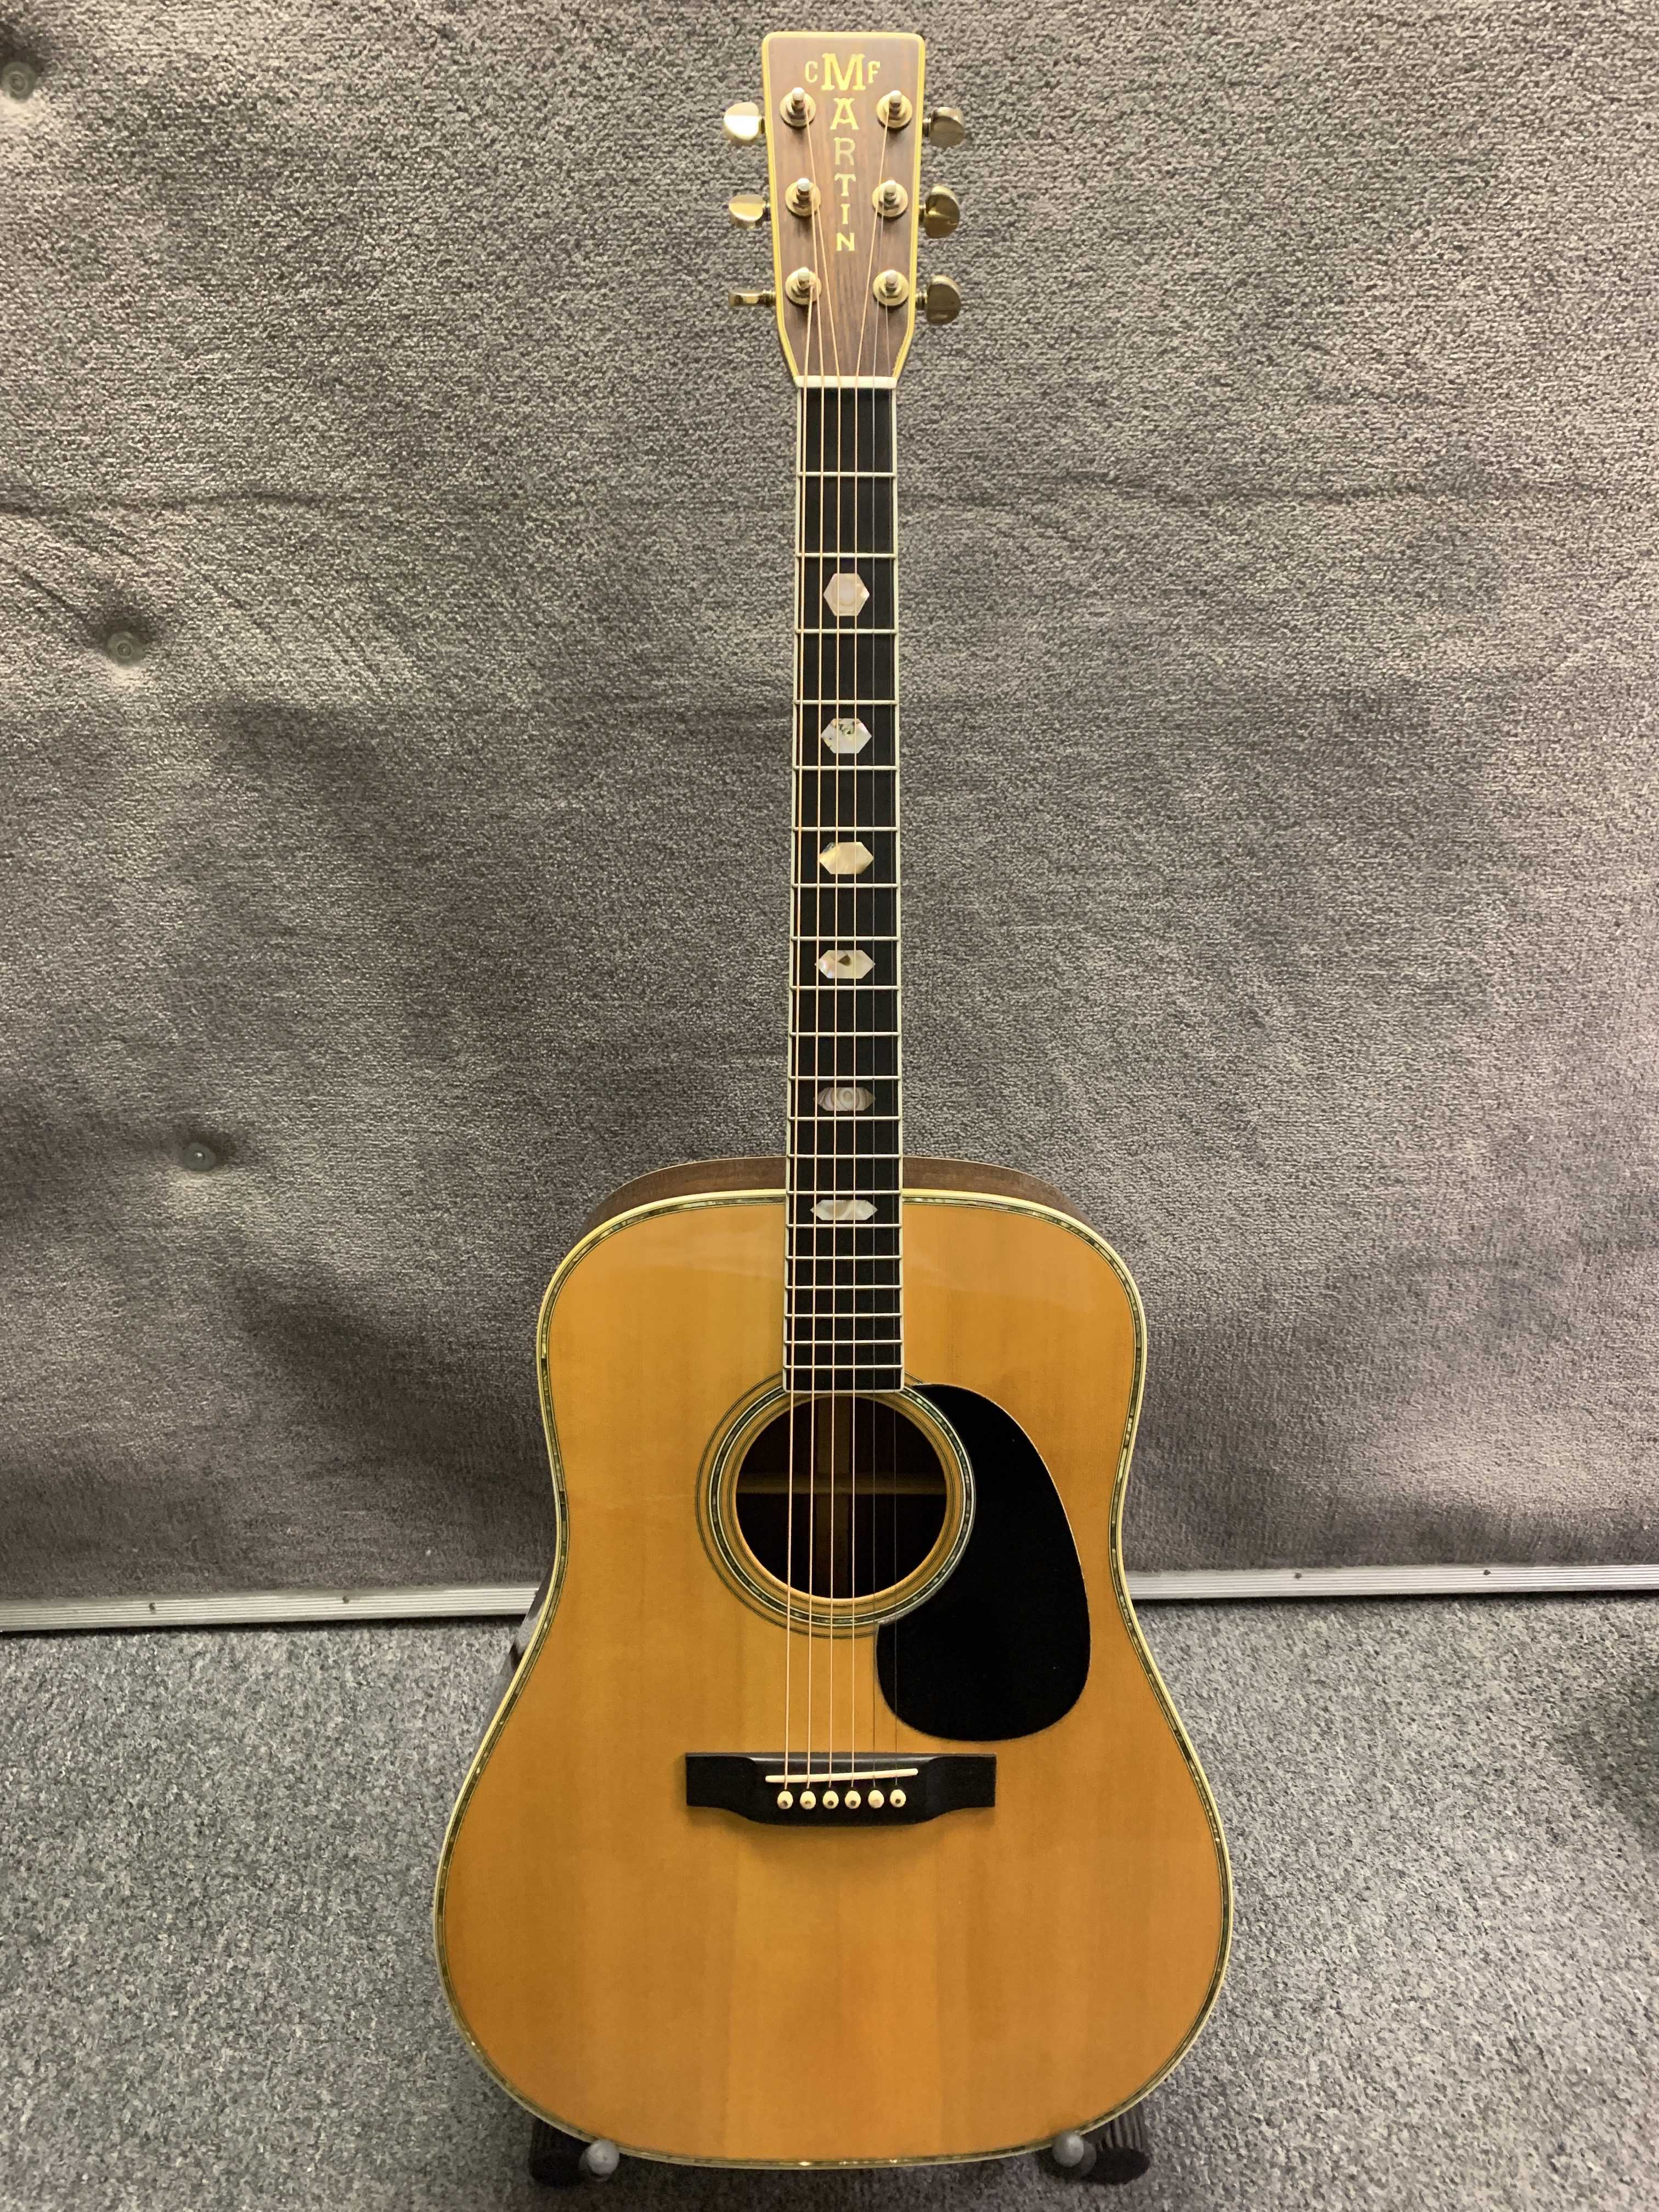 1973 martin d41 guitar w hard shell case south austin music new used and vintage. Black Bedroom Furniture Sets. Home Design Ideas